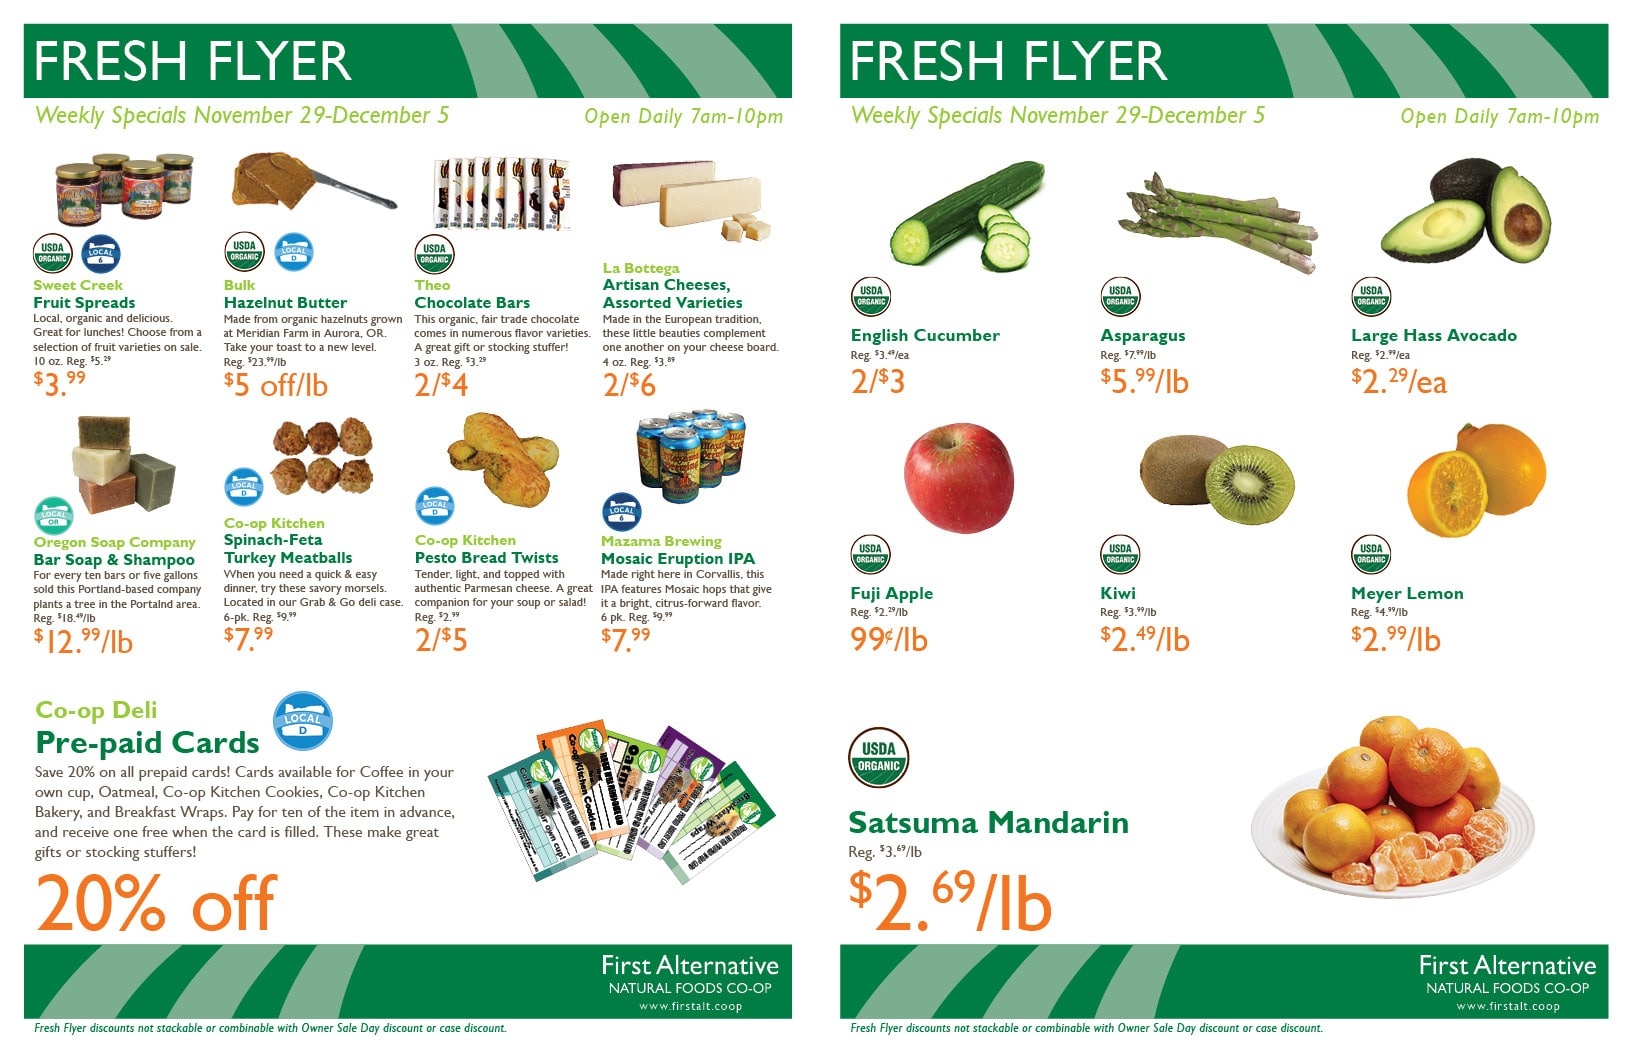 First Alternative Co-op Fresh Flyer November 29-December 5